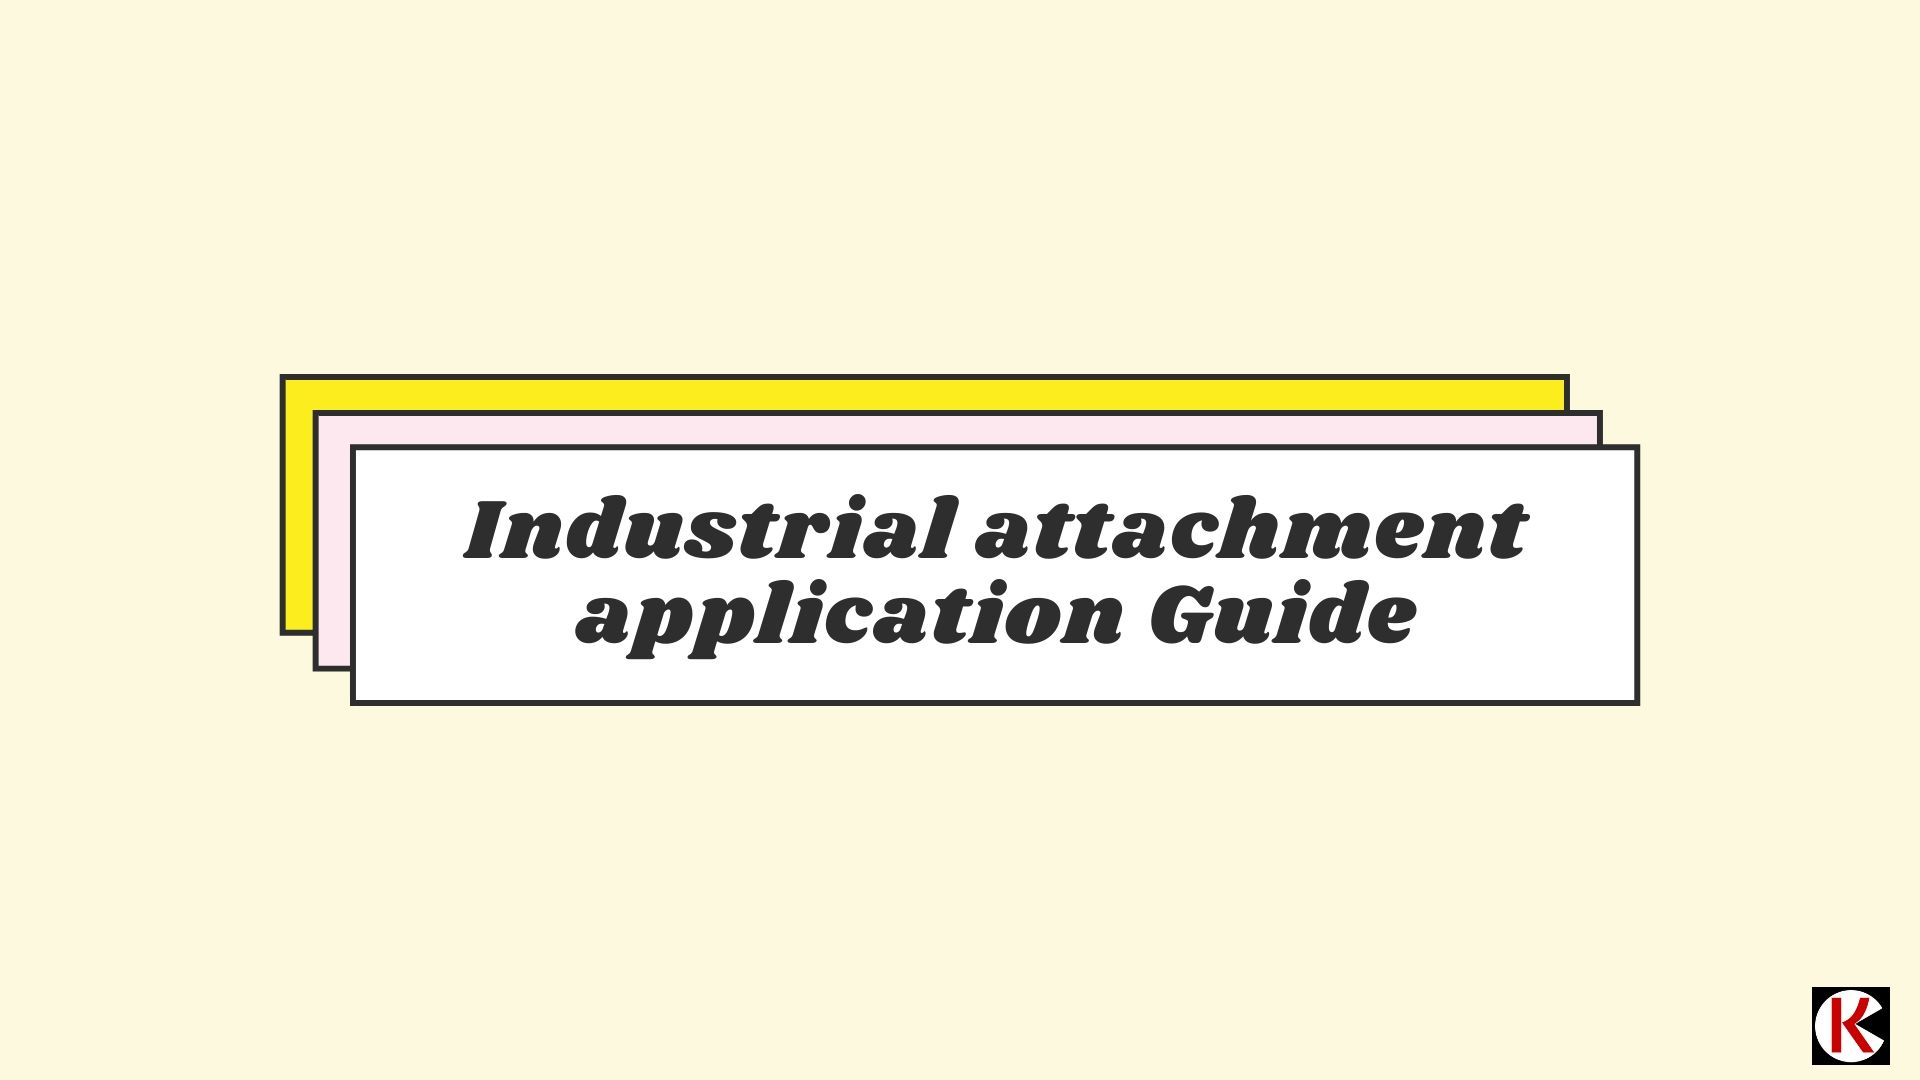 How to Apply For University Industrial Attachment